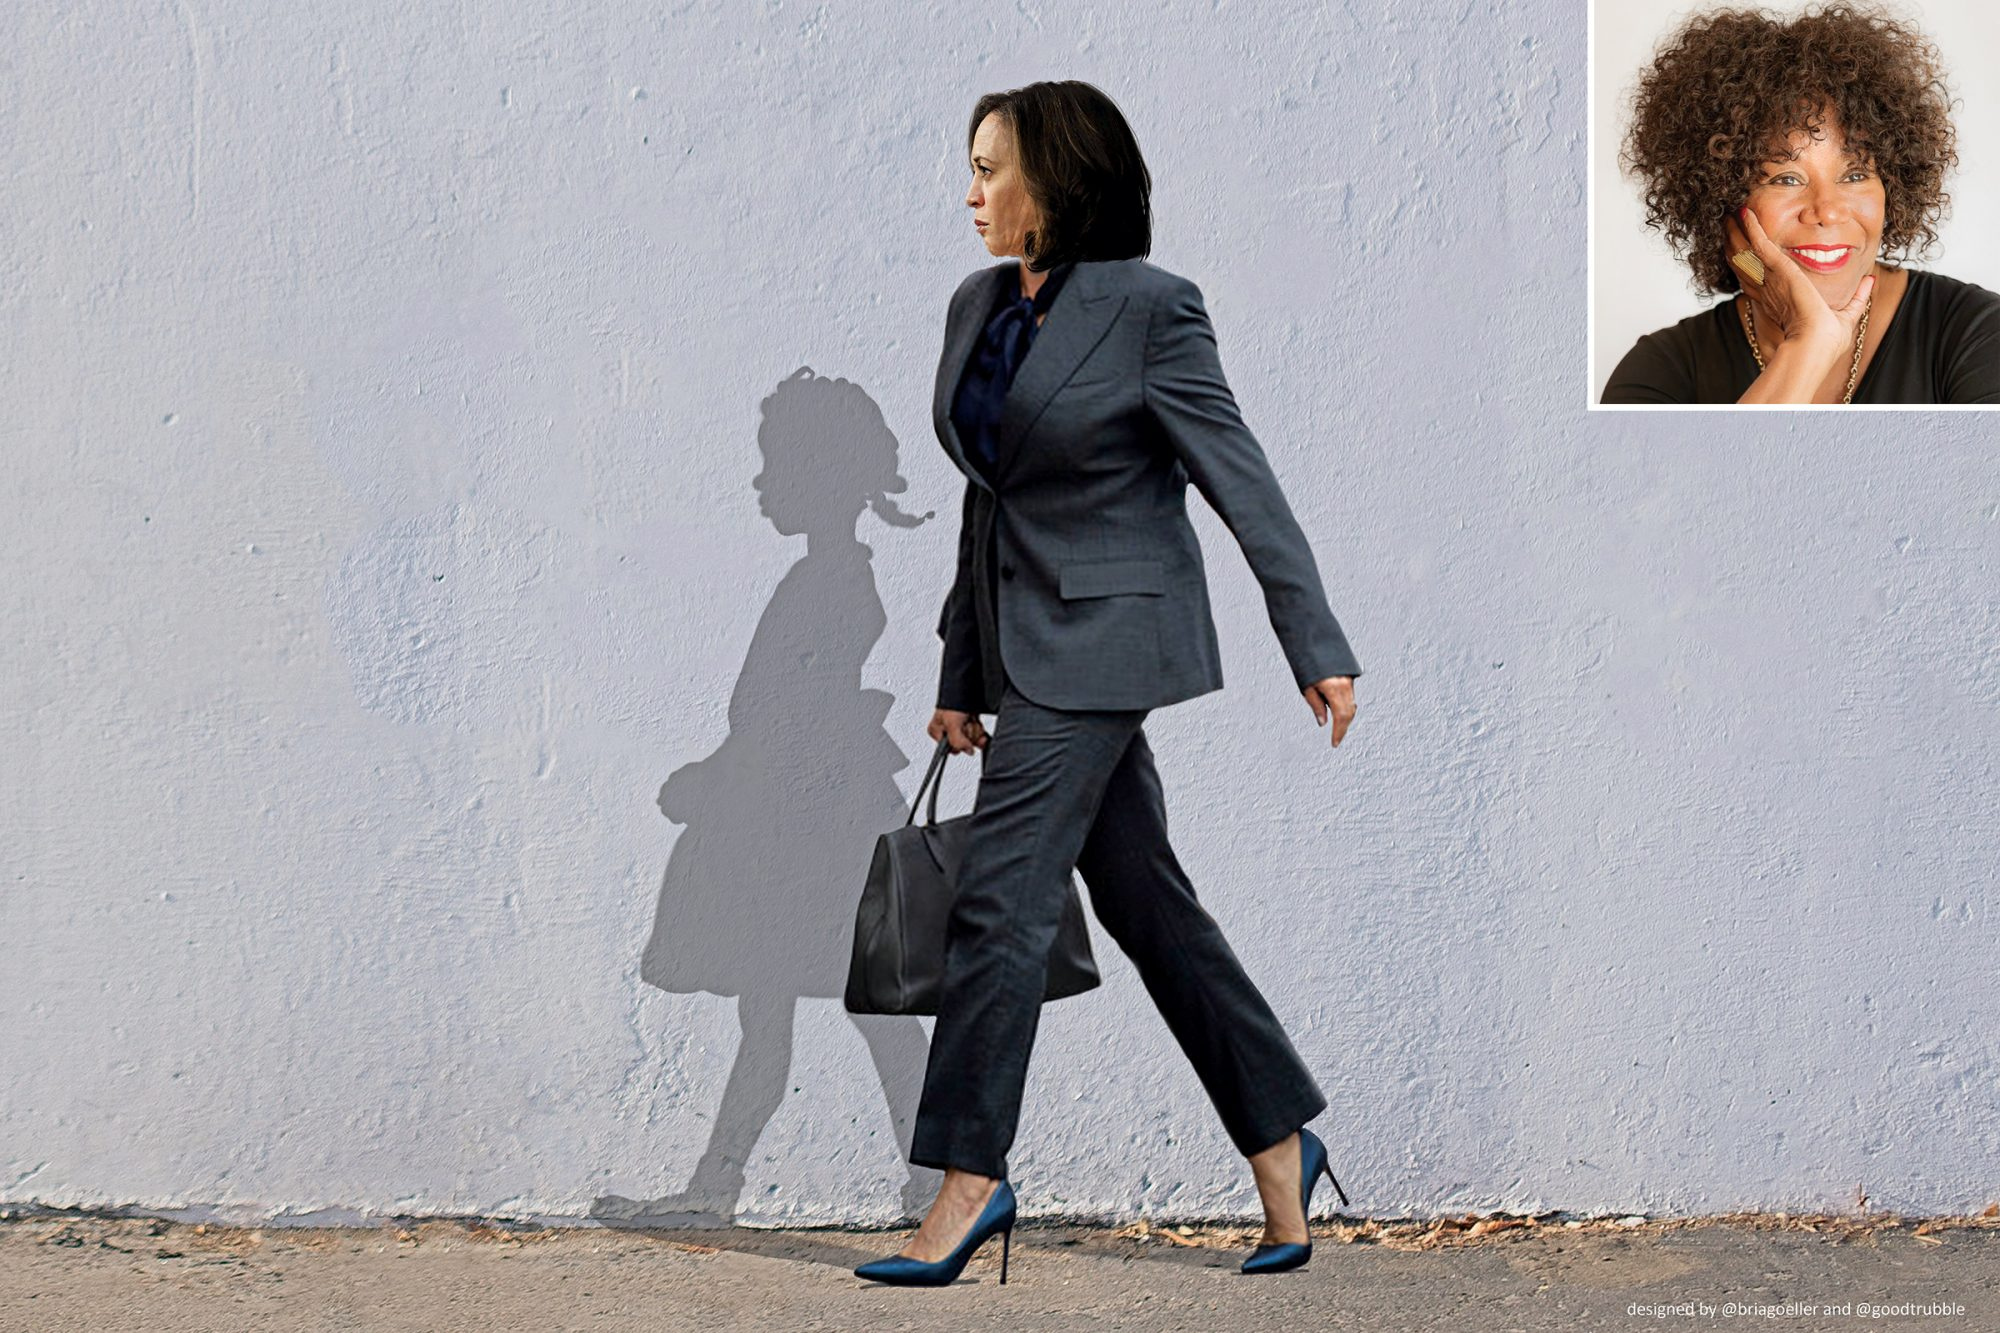 Illustration and meme created by Bria Goeller showing Kamala Harris walking in synch with the shadow of Ruby Bridges the activist